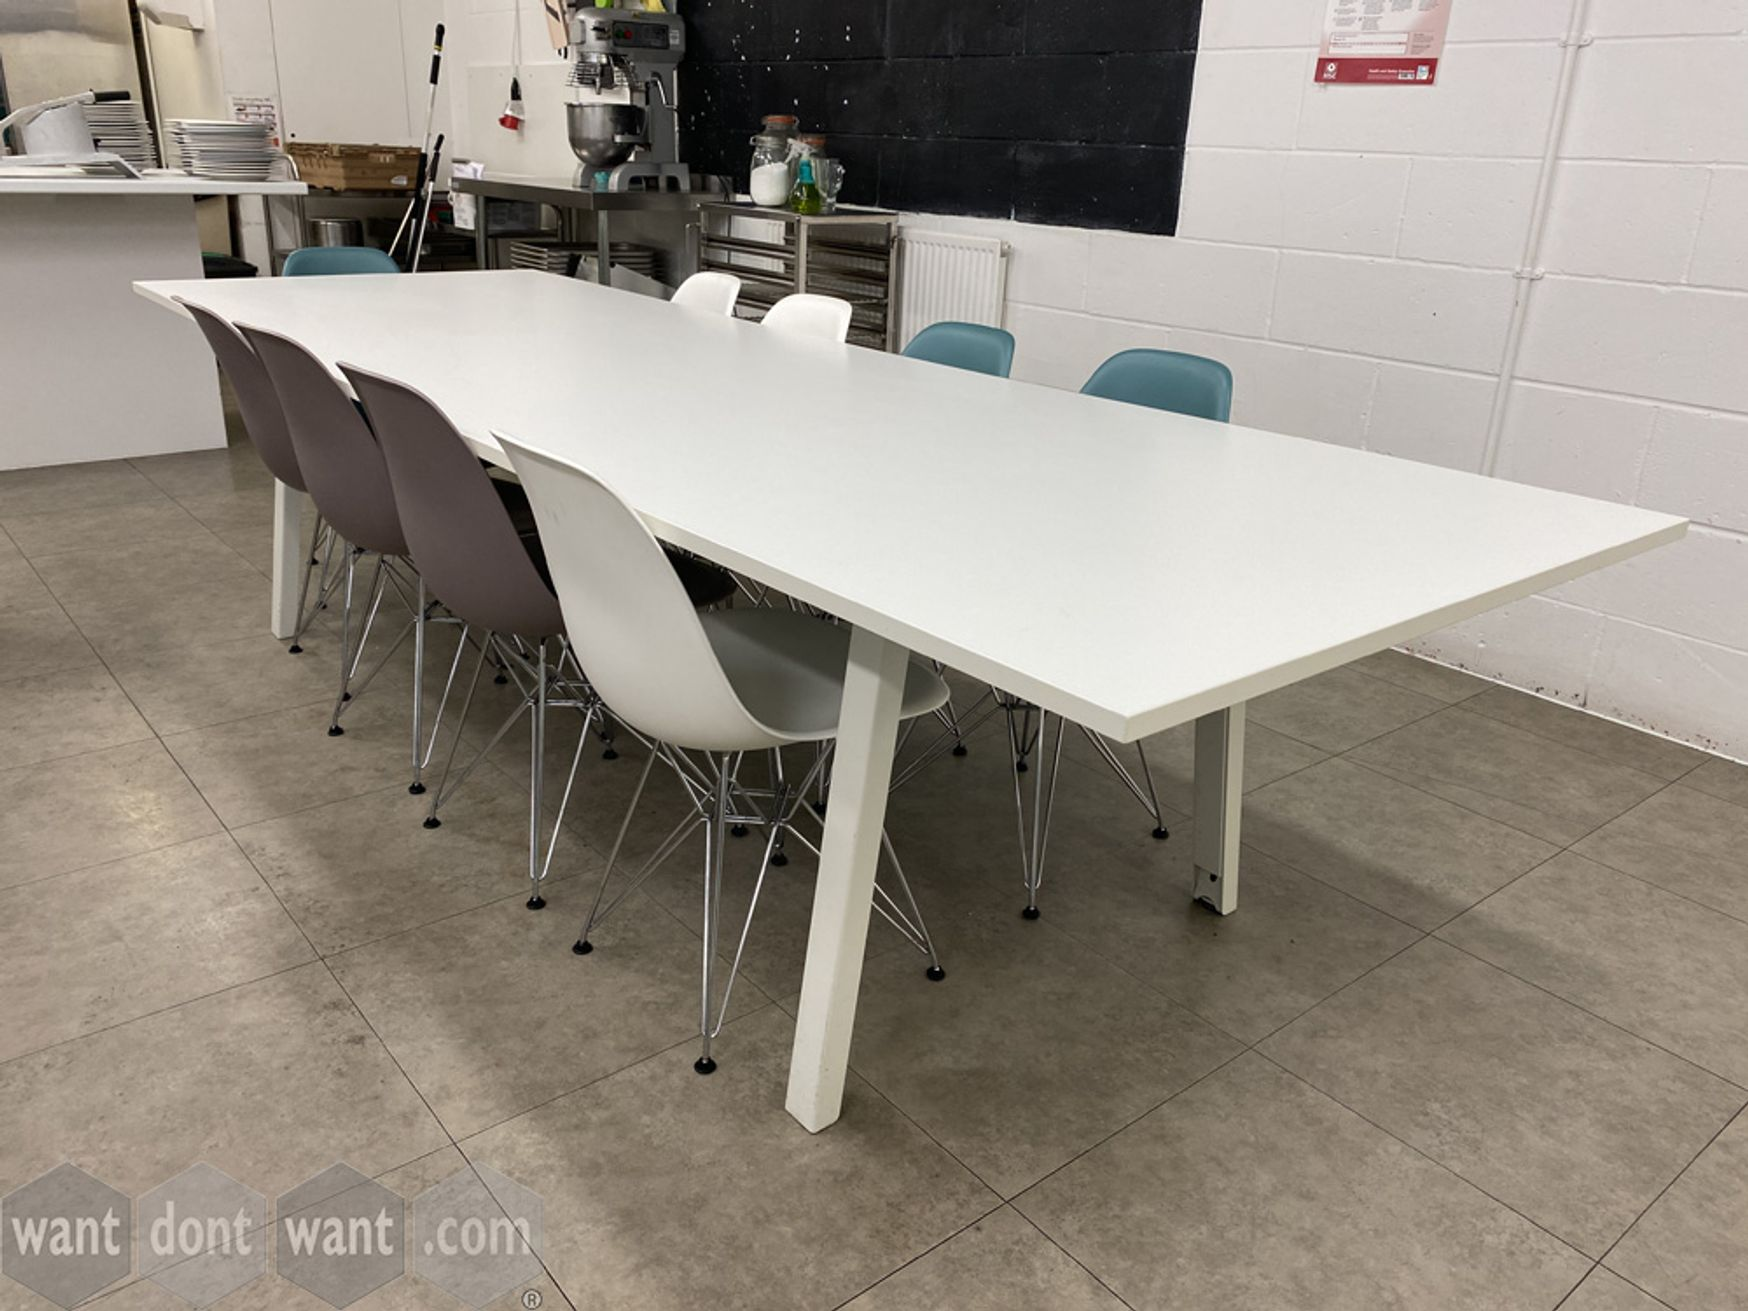 Used large (3000mm wide) white meeting/breakout tables with splayed legs.